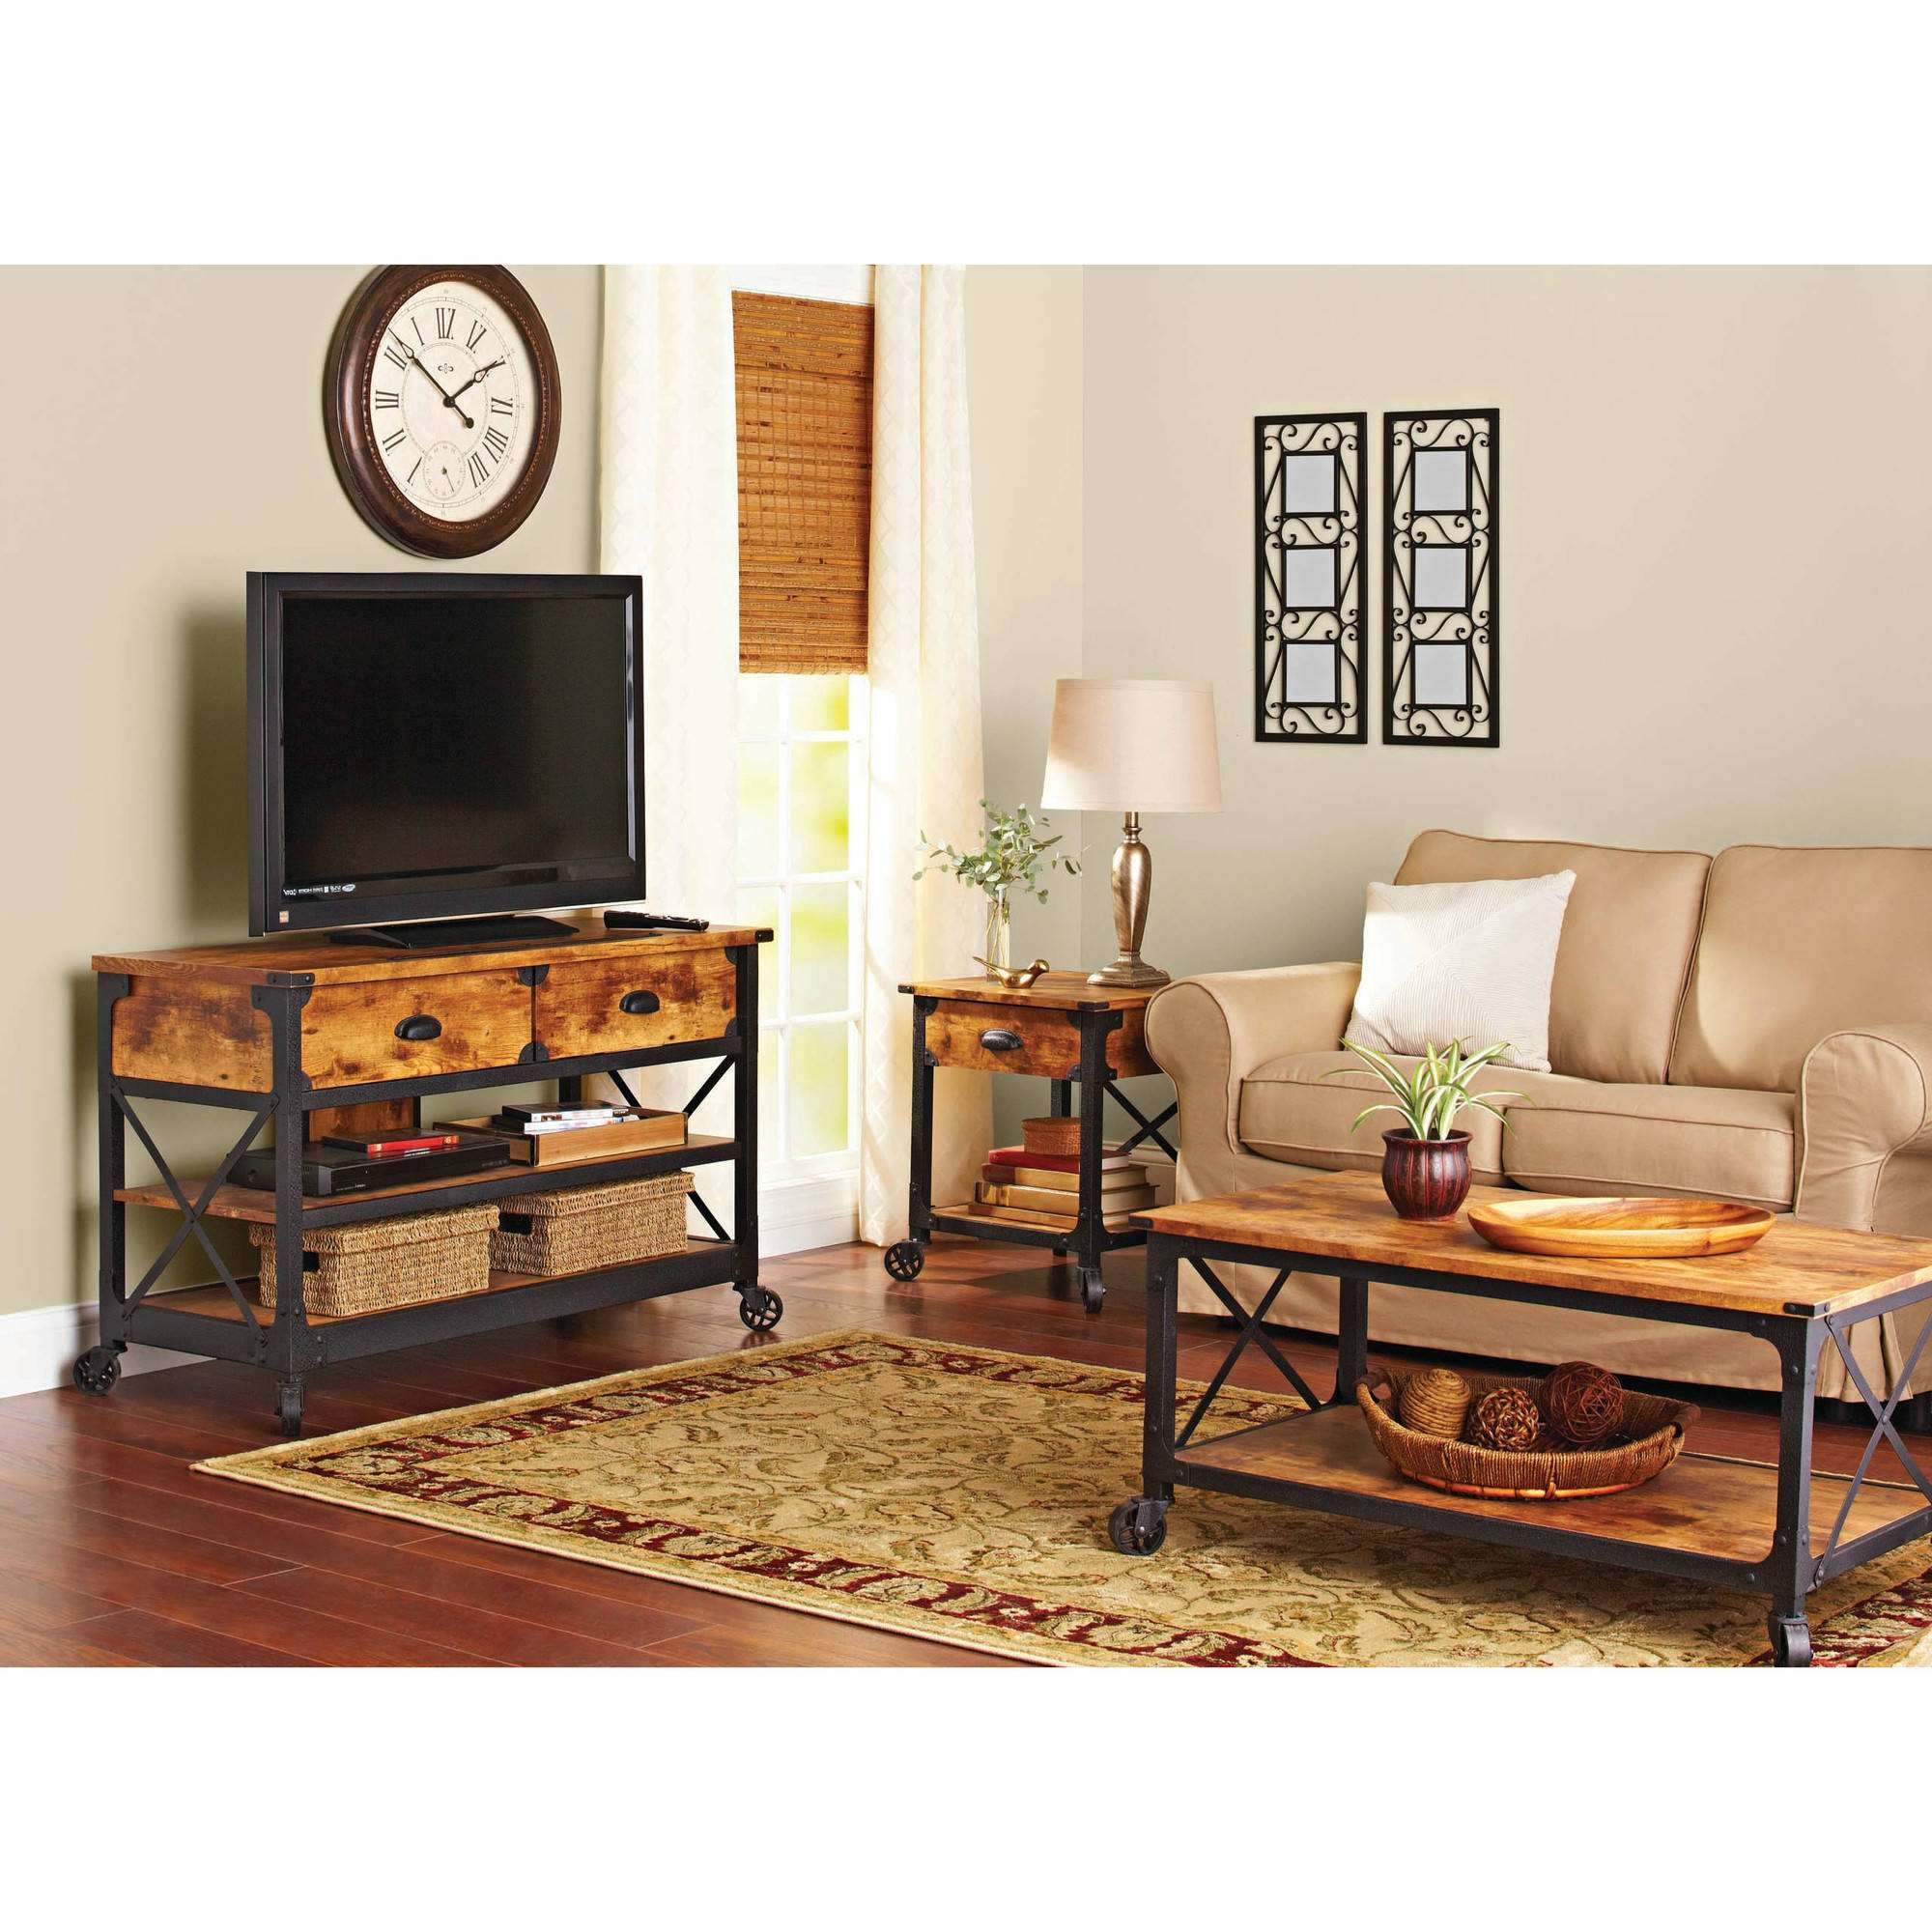 Better Homes And Gardens Rustic Country Living Room Set – Walmart In Rustic Looking Tv Stands (View 2 of 20)